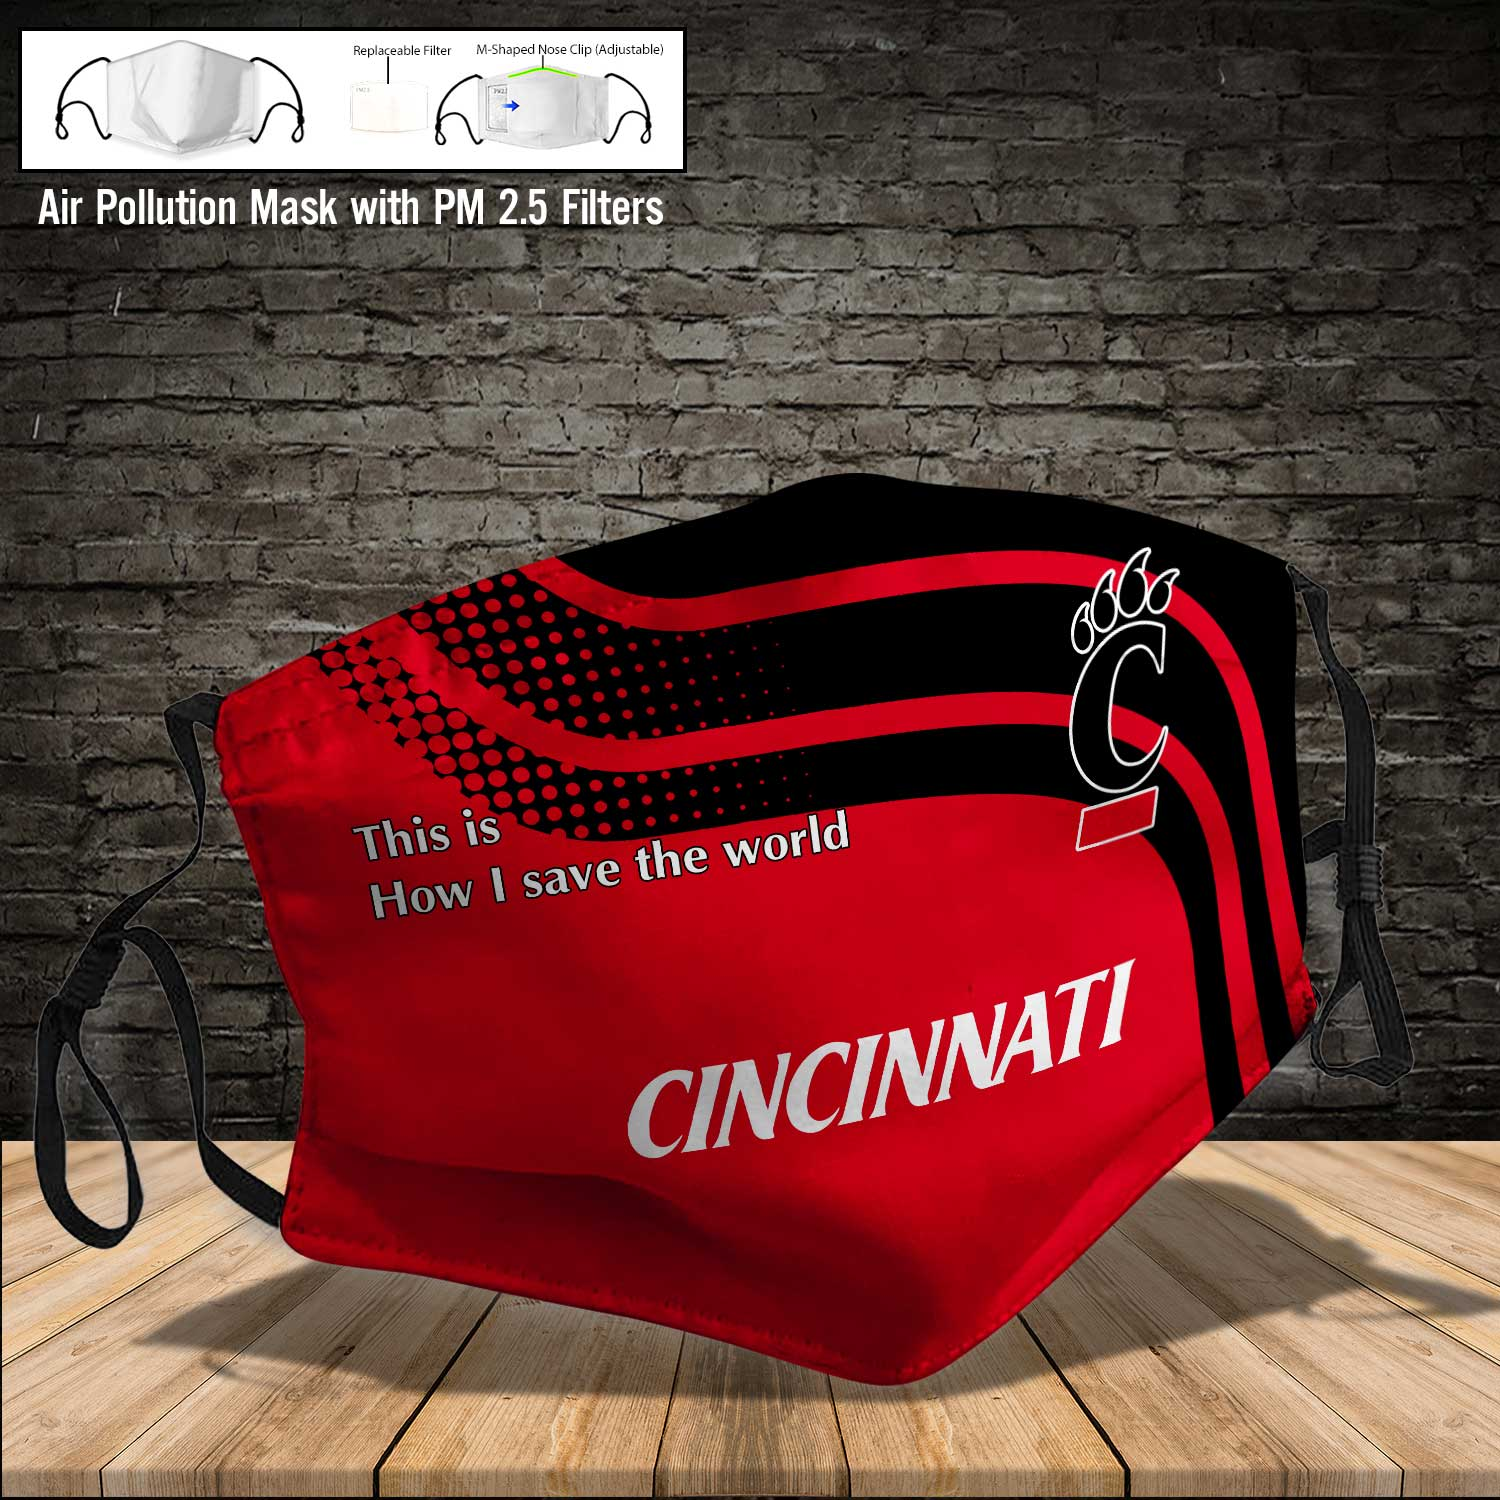 Cincinnati bearcats this is how i save the world face mask 4